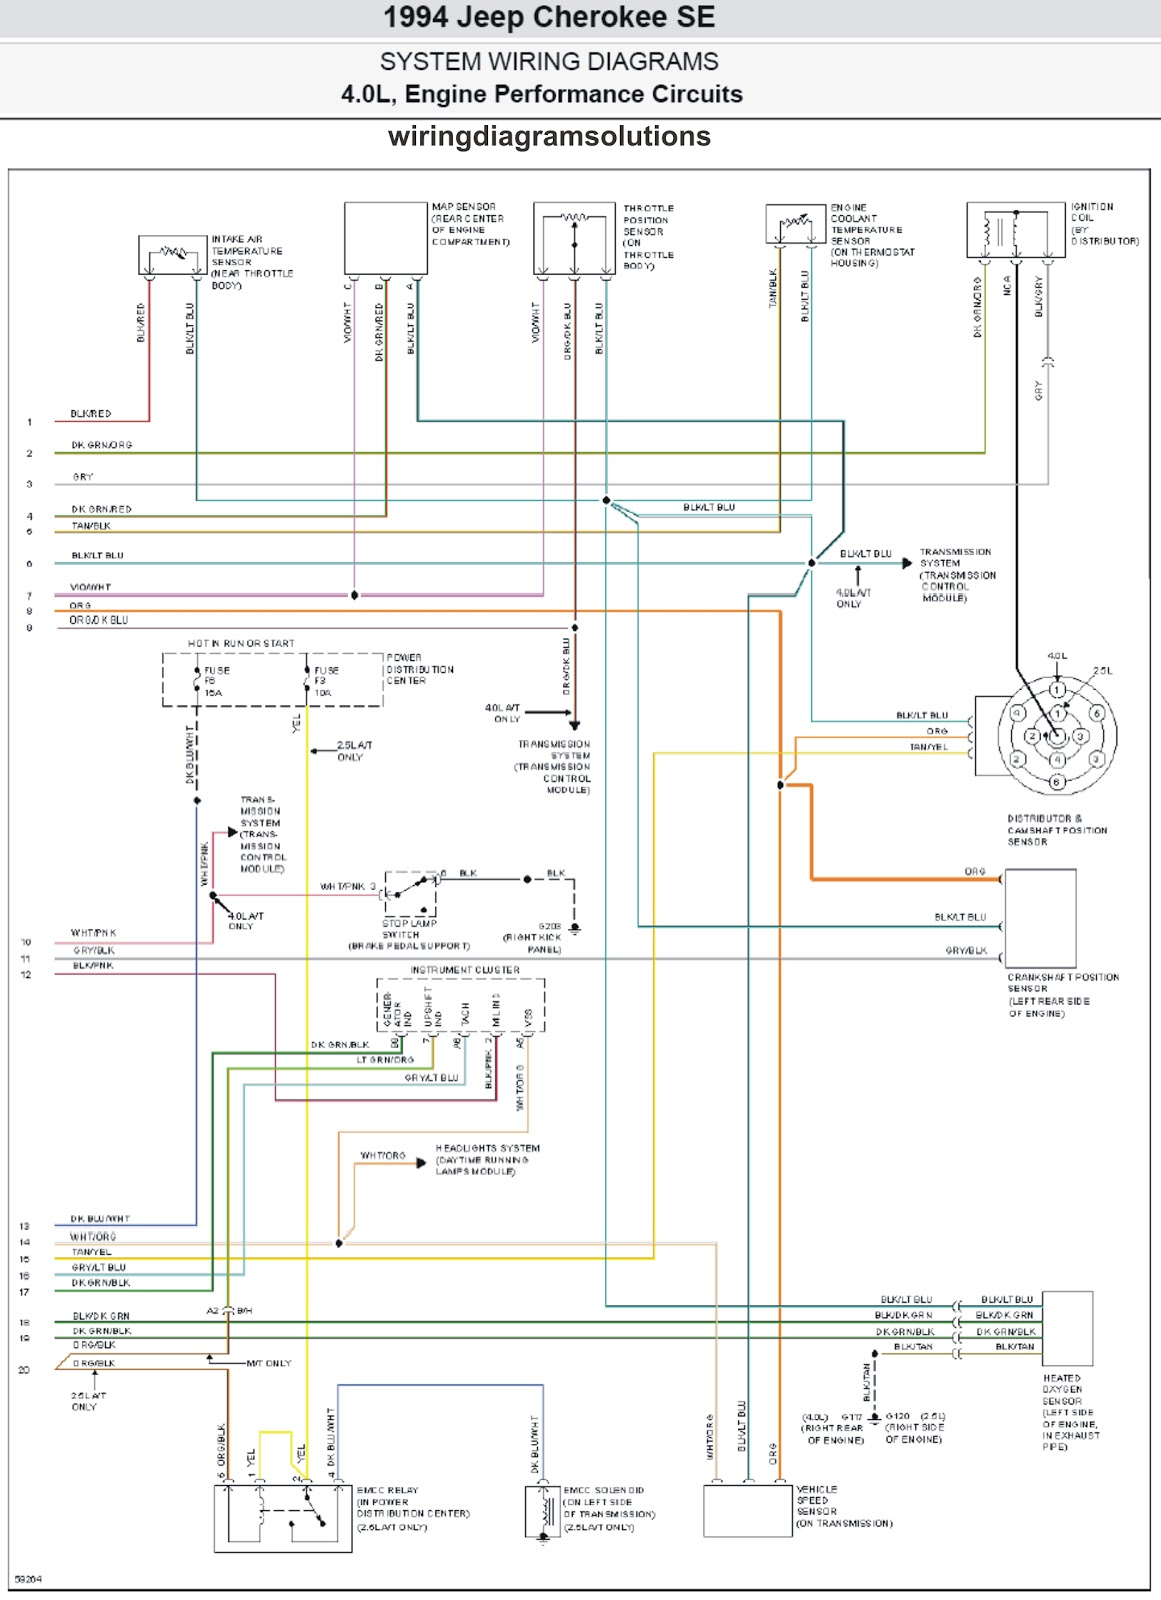 1994+Jeep+Cherokee+SE_2 2005 grand cherokee wiring diagram 2005 free wiring diagrams  at suagrazia.org